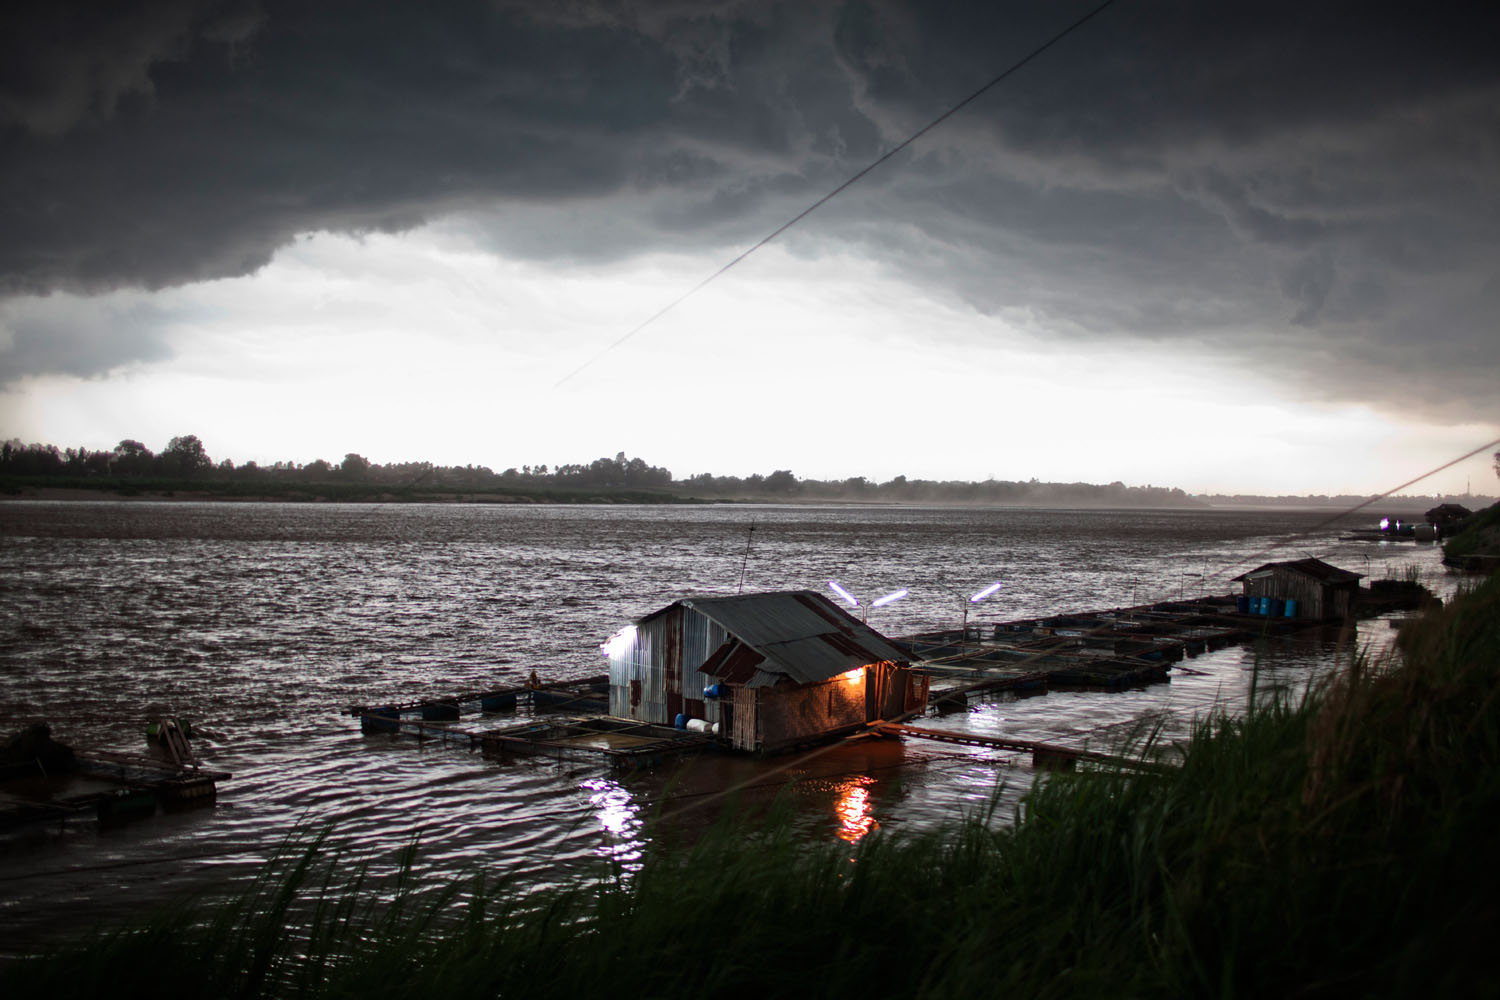 An afternoon storm approaches a fish farm on the Mekong River in Vientiane, Laos People's Democratic Republic on May 12, 2011.